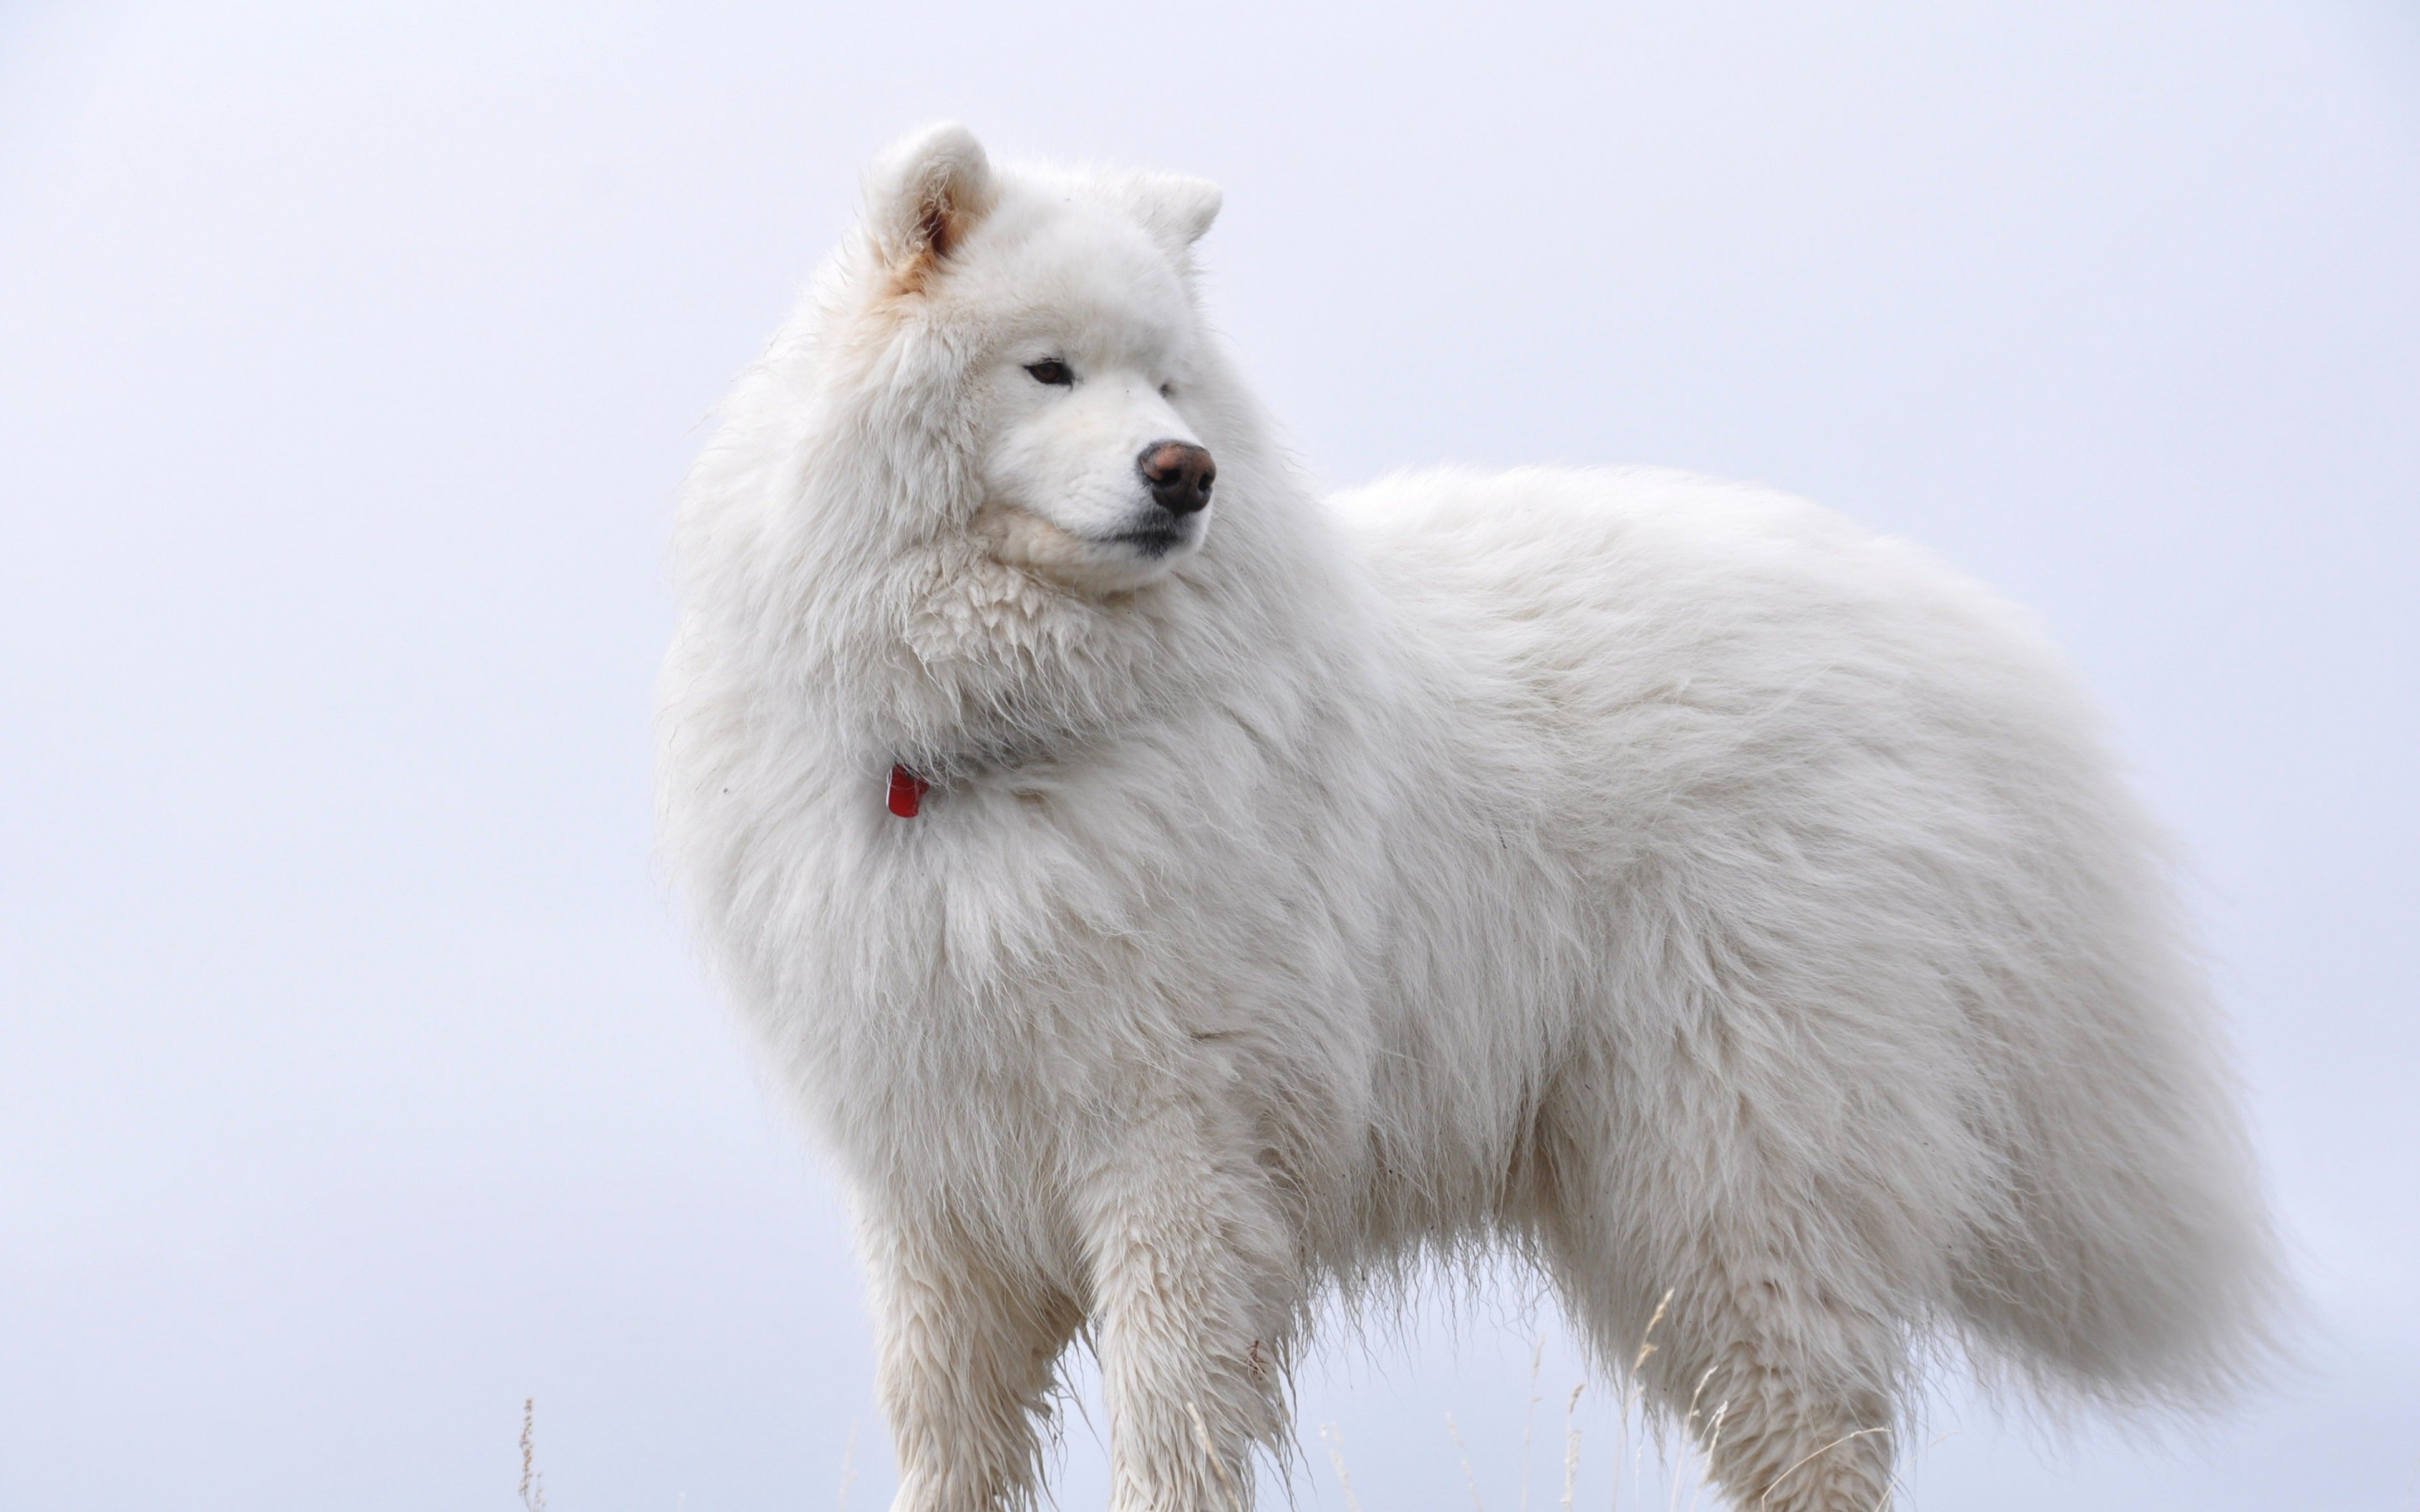 Big White Fluffy Samoyed Wallpaper for Desktop 2880x1800